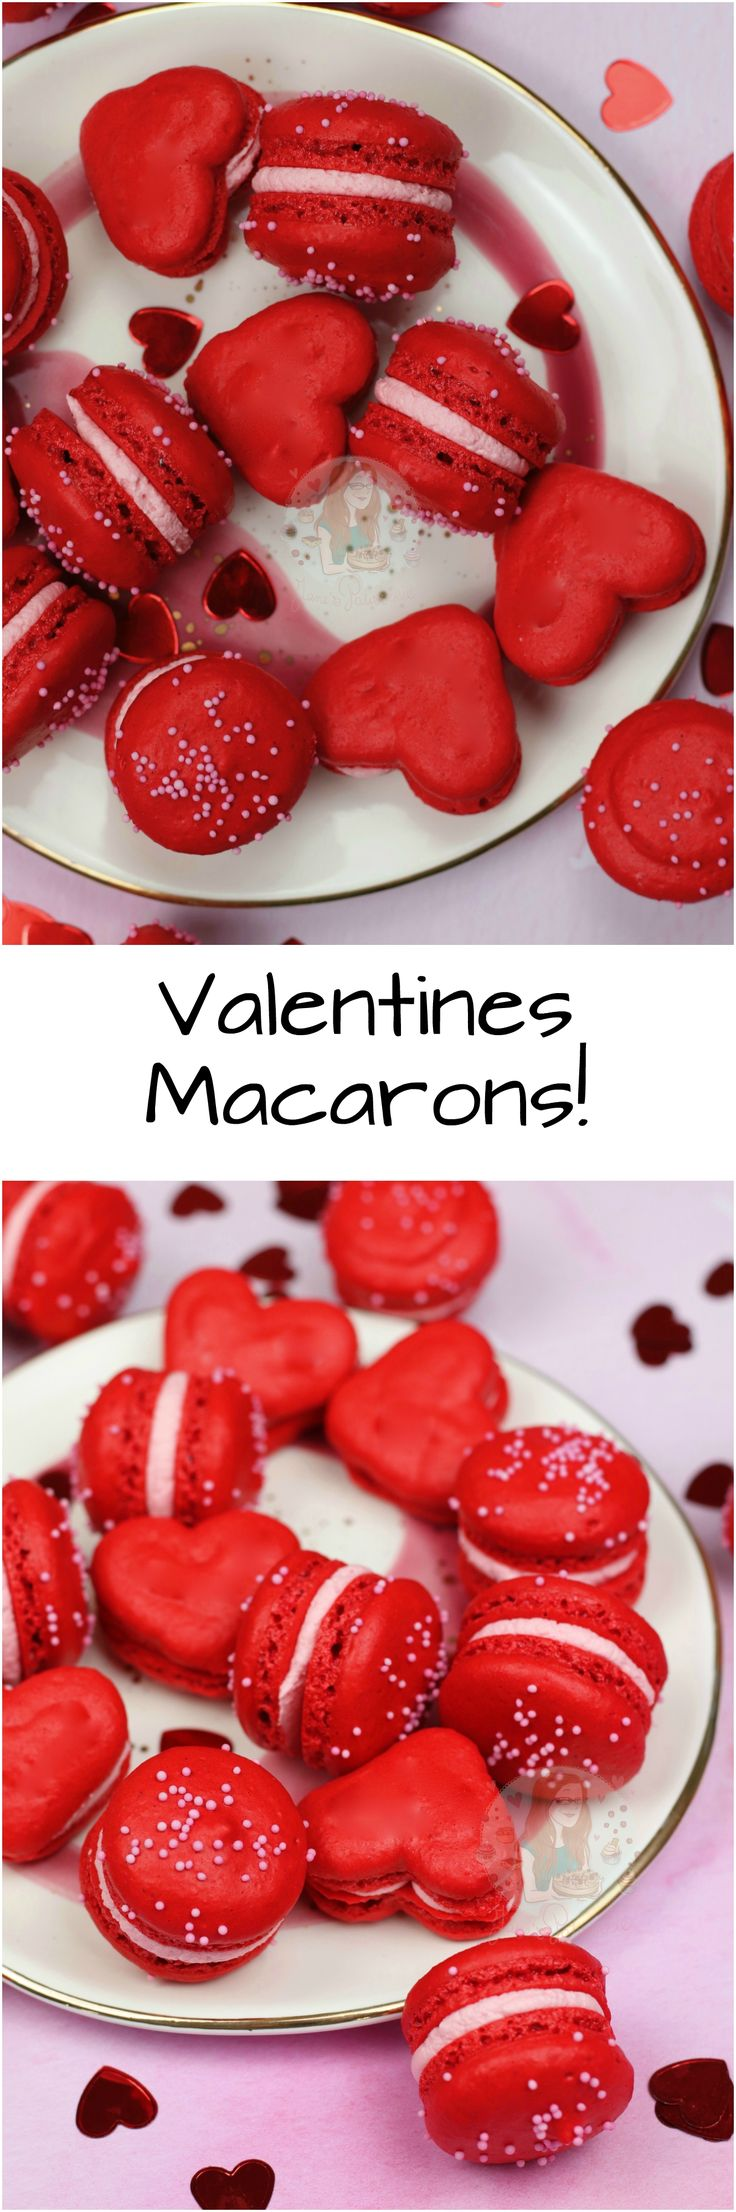 Valentines Macarons! Easy, Delicious and Beautiful Valentines Macarons that are perfect for the Day!